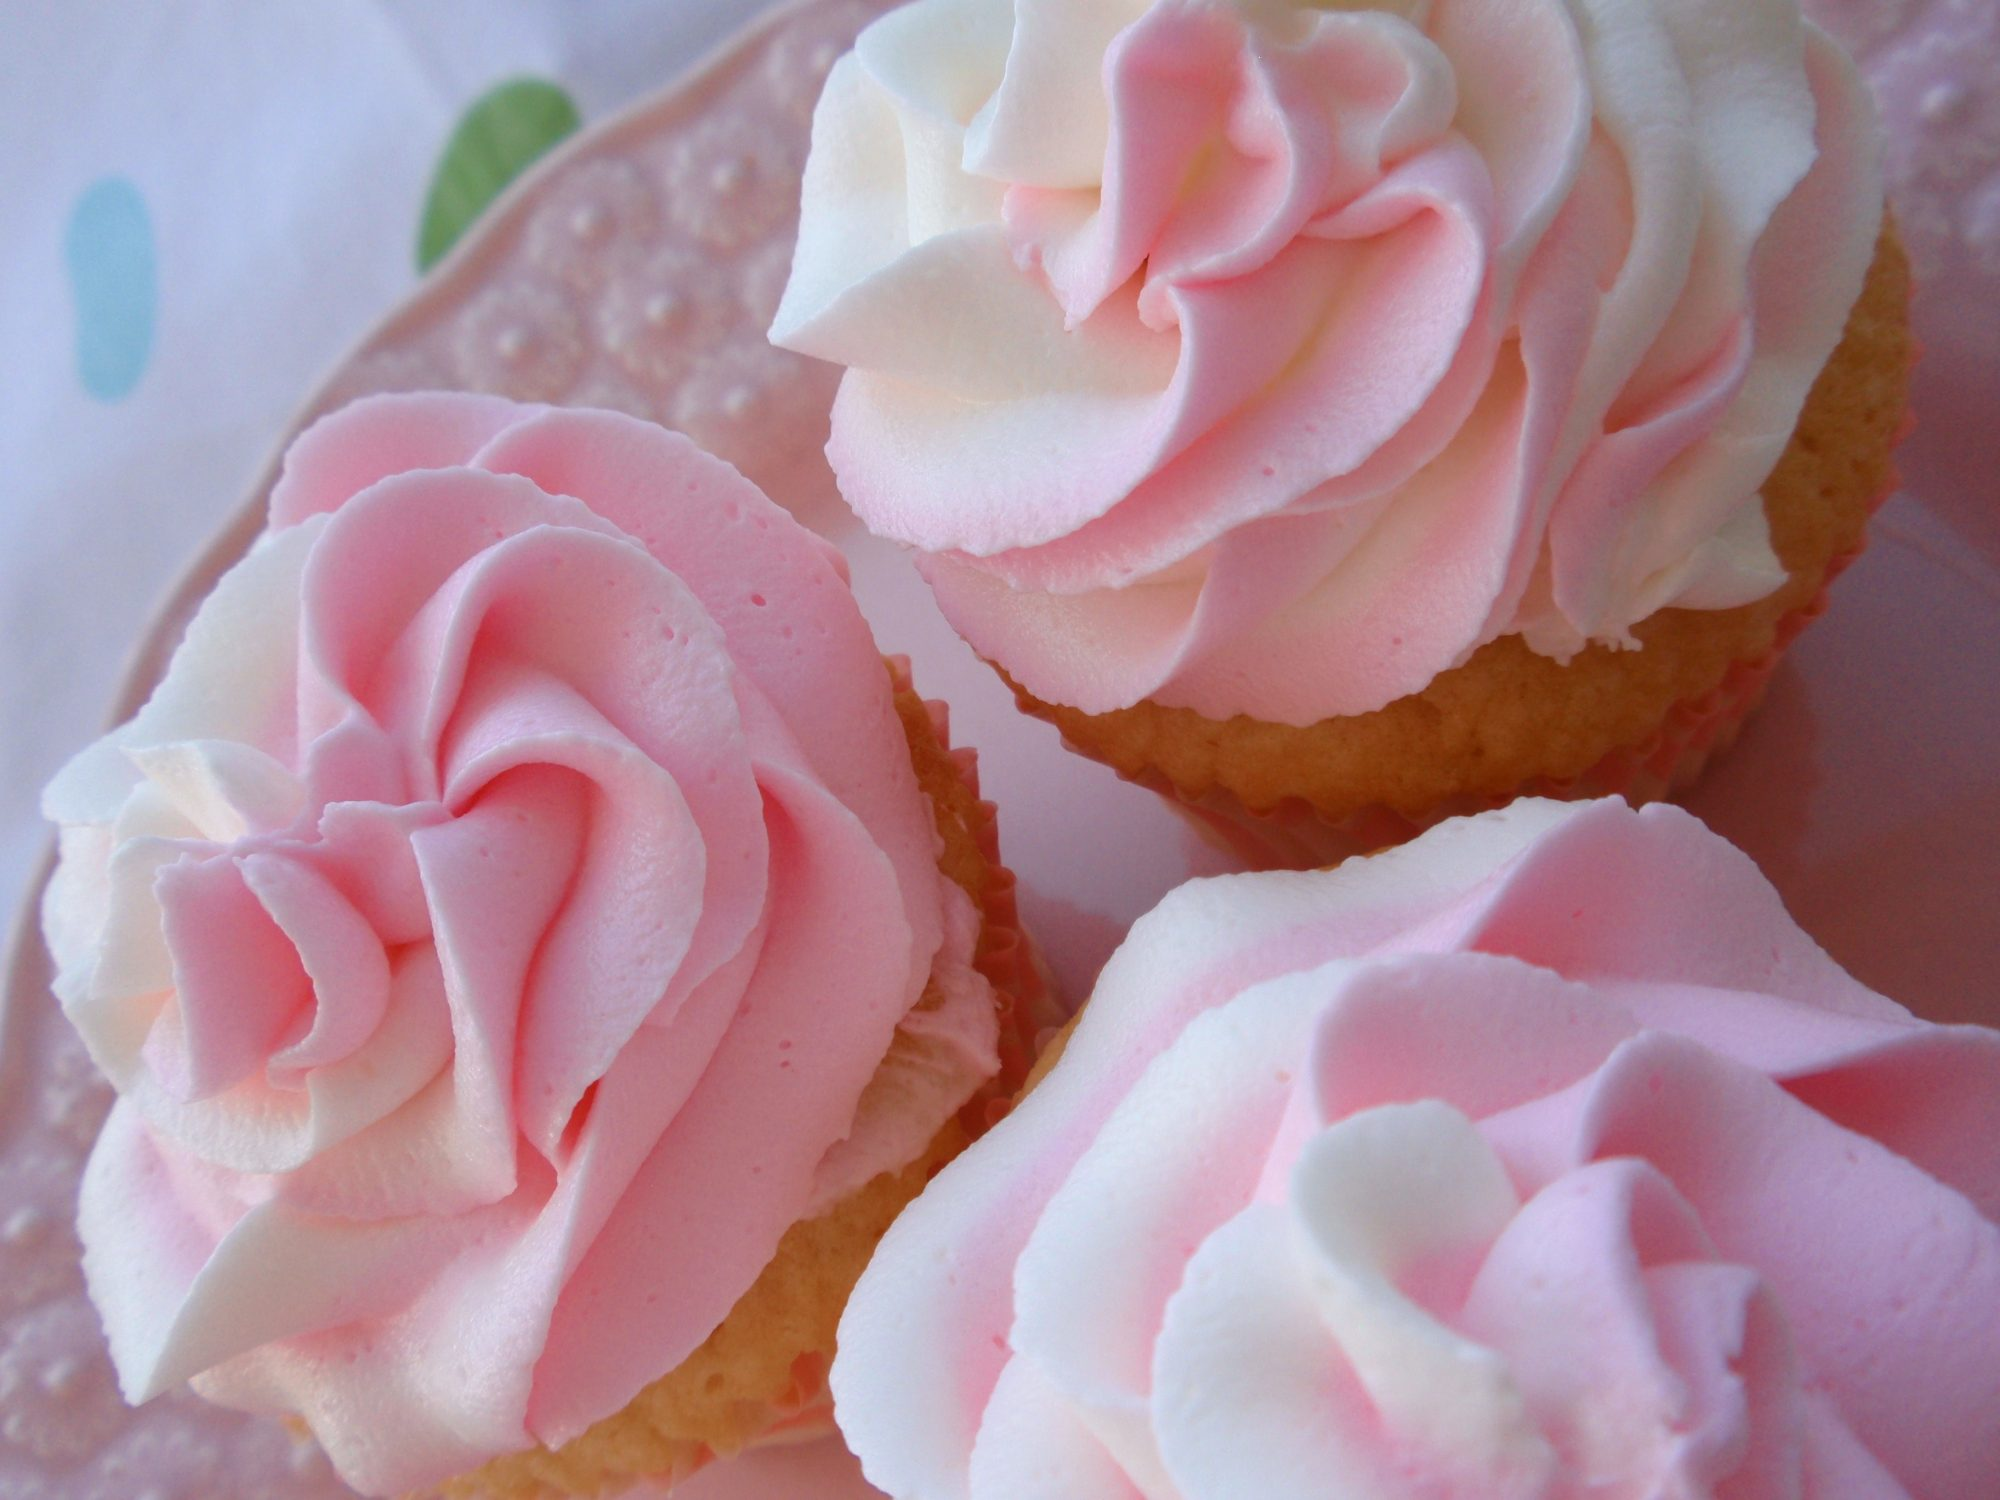 Pink and white tinted frosting piped like rose petals on cupcakes